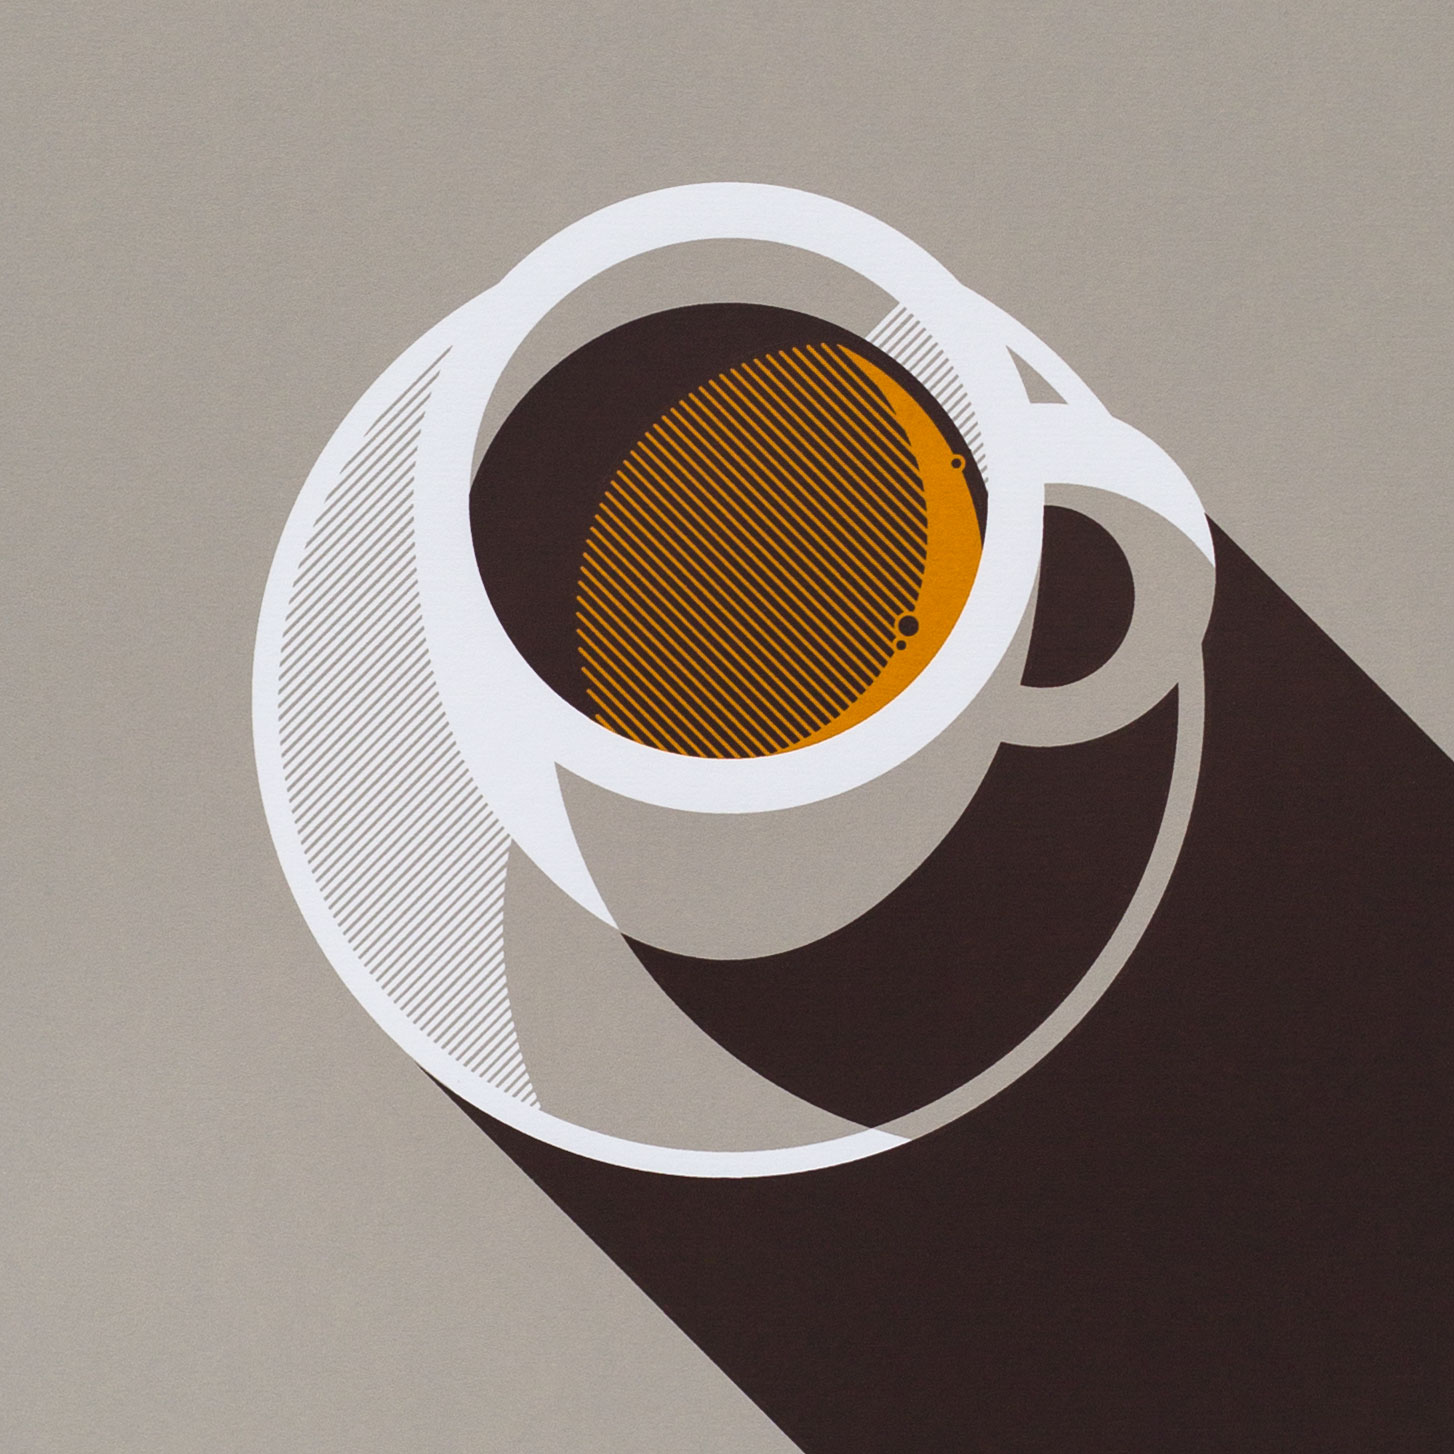 Espresso Coffee Screen Screen Print by Dan Forster created for The Lost Fox